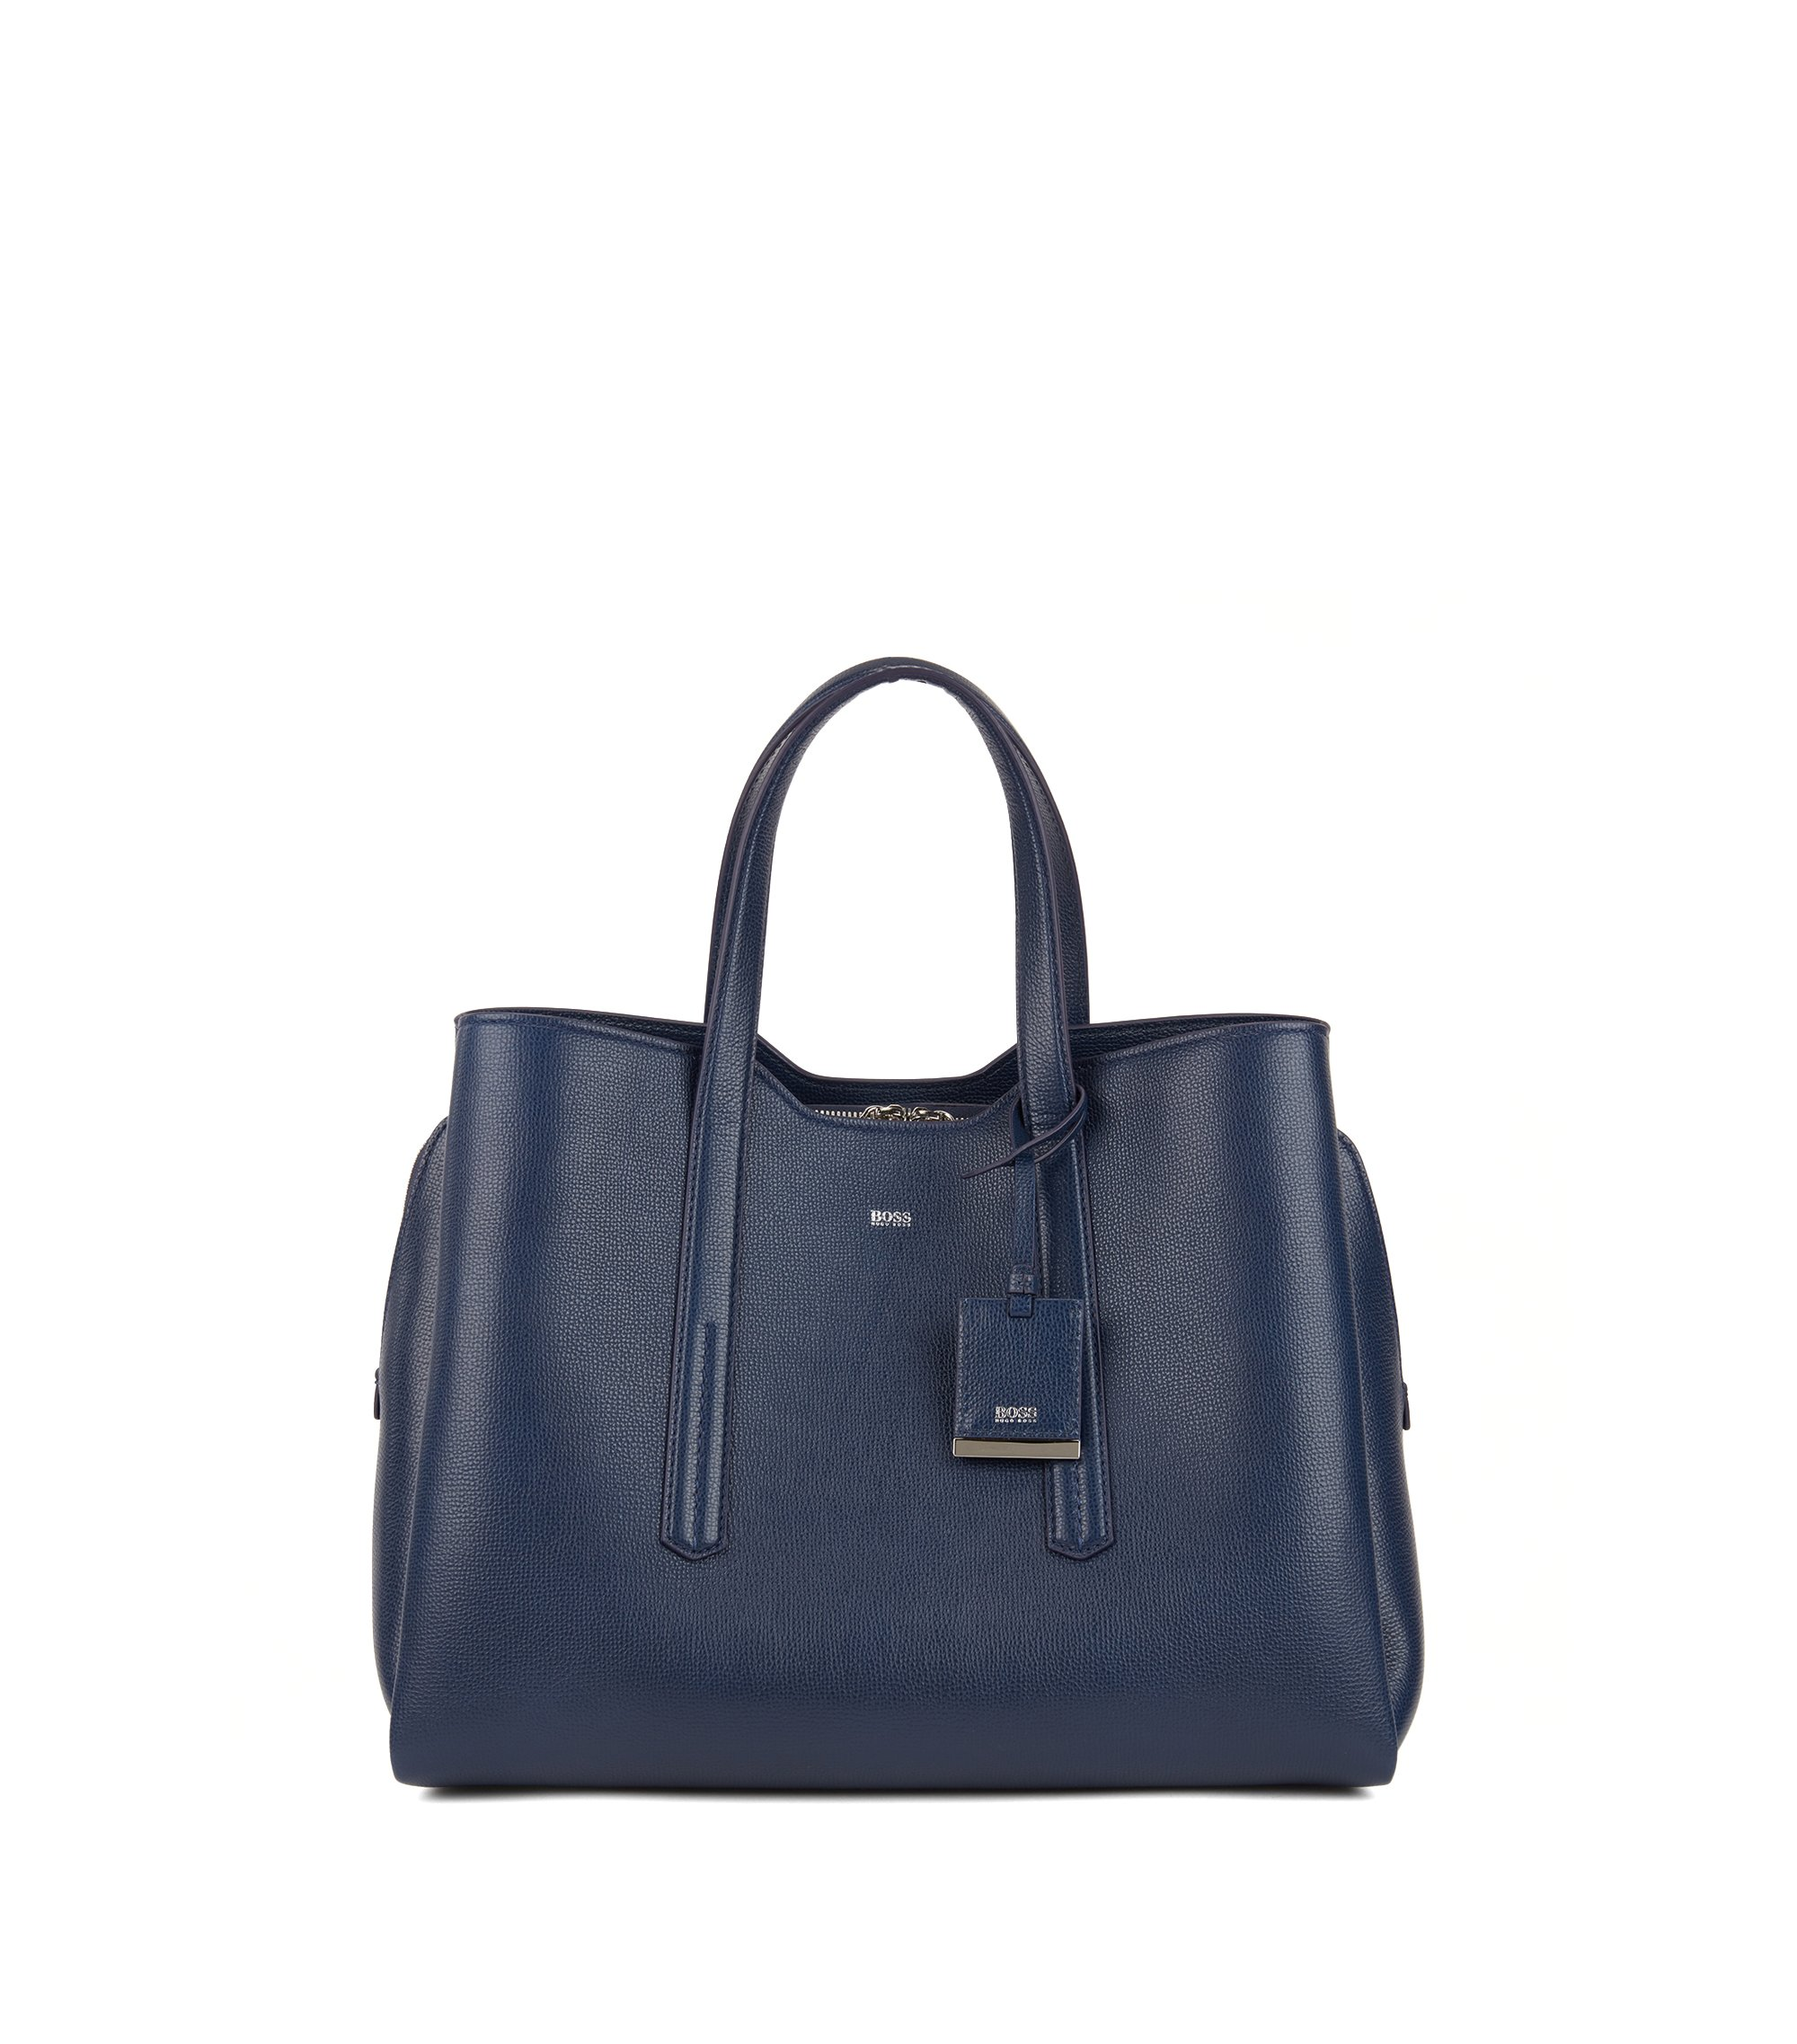 Soft tote bag in grainy Italian leather, Hellblau